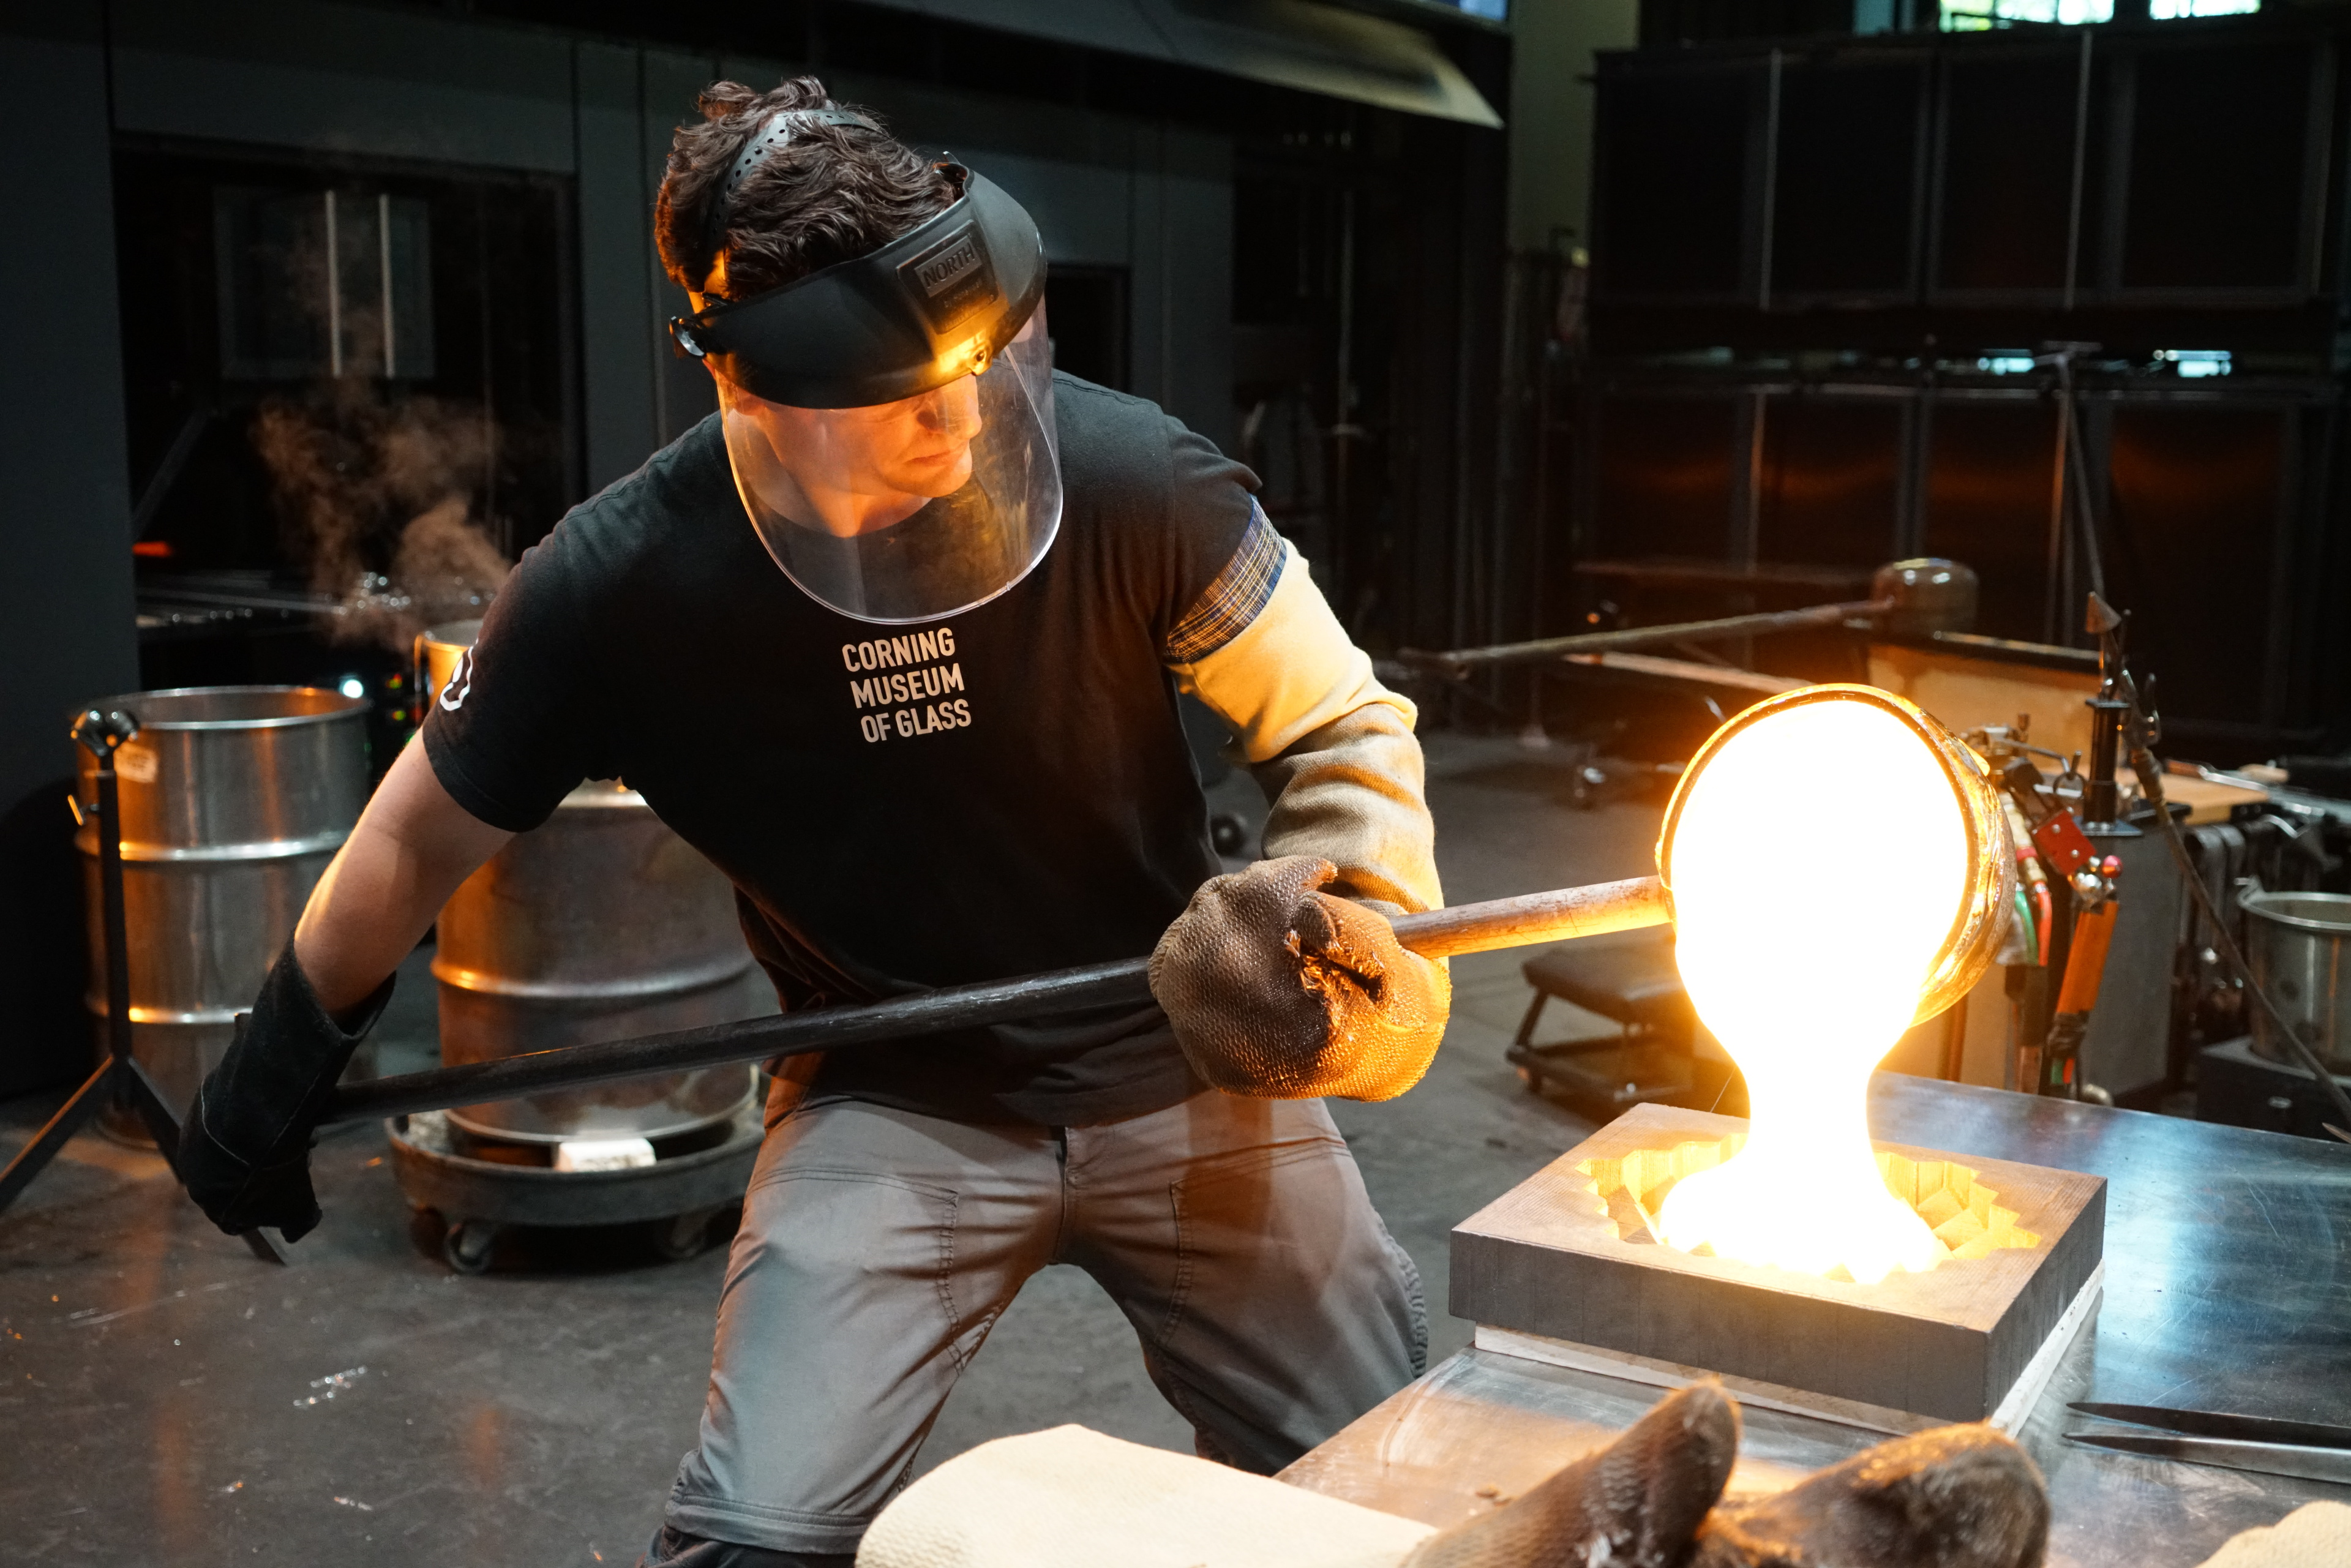 A glassworker pours molten glass into a mold while wearing protective gloves and mask.